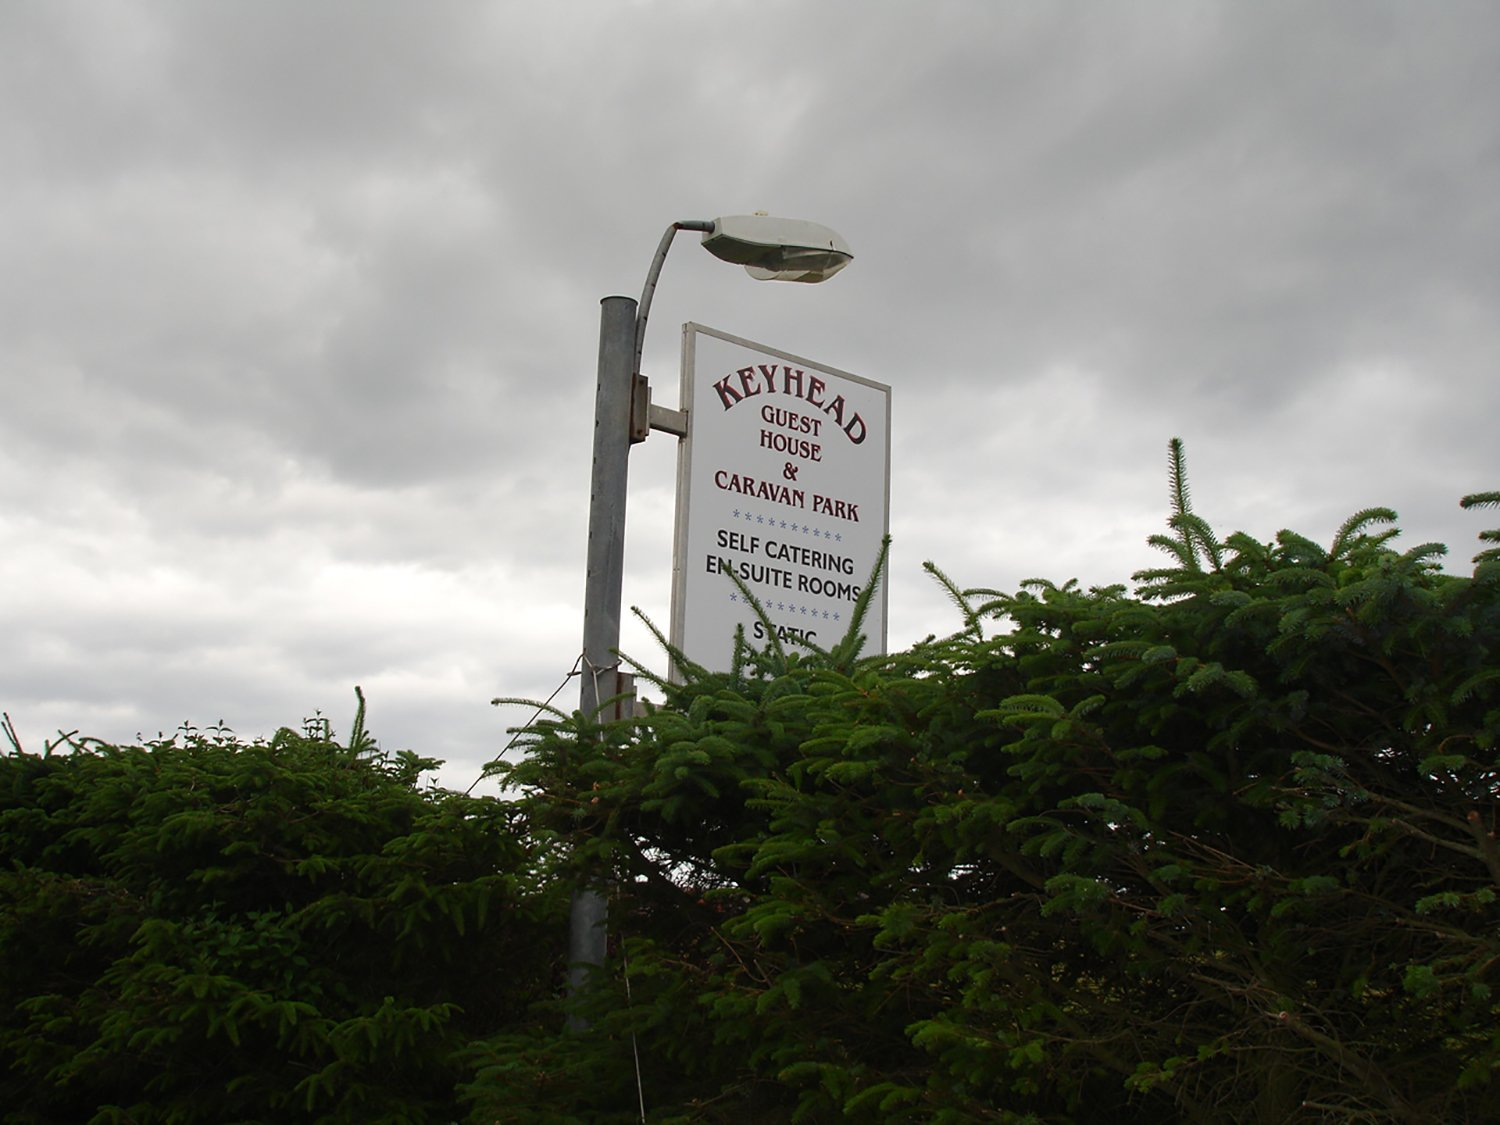 keyhead guest house sign